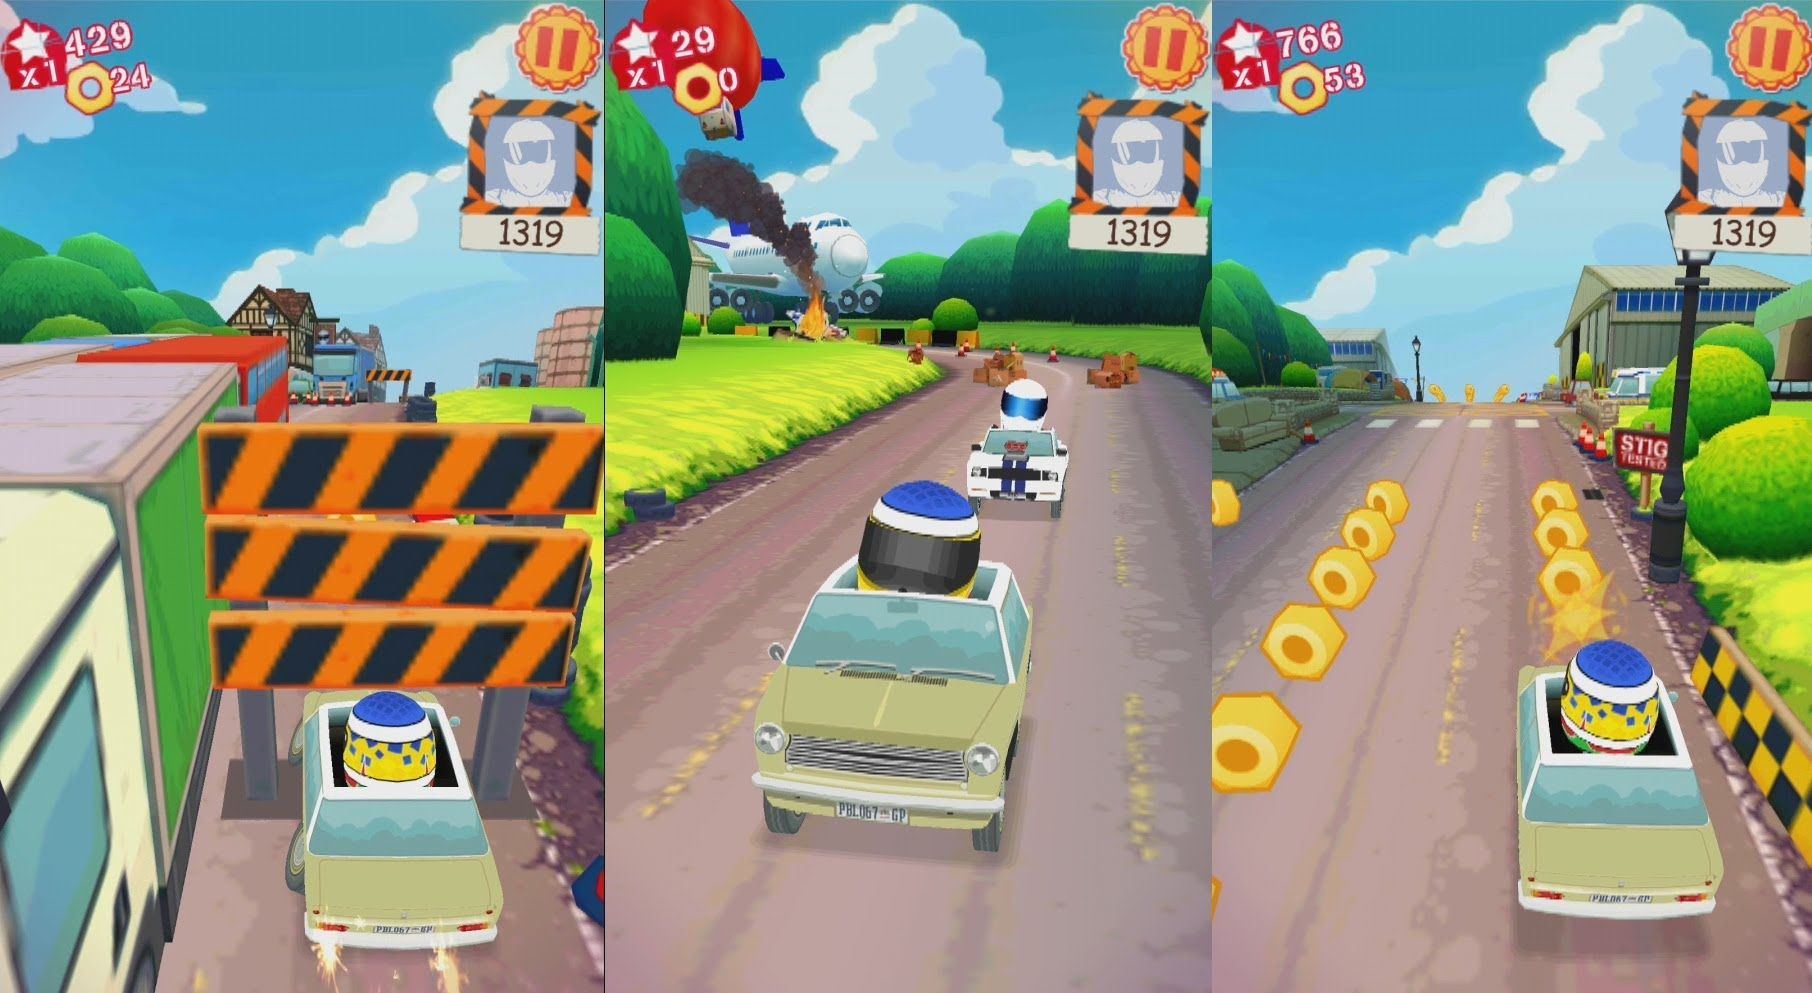 Top Gear Race the Stig - Android Review - http://androidizen.com/video/top-gear-race-stig-android-review/